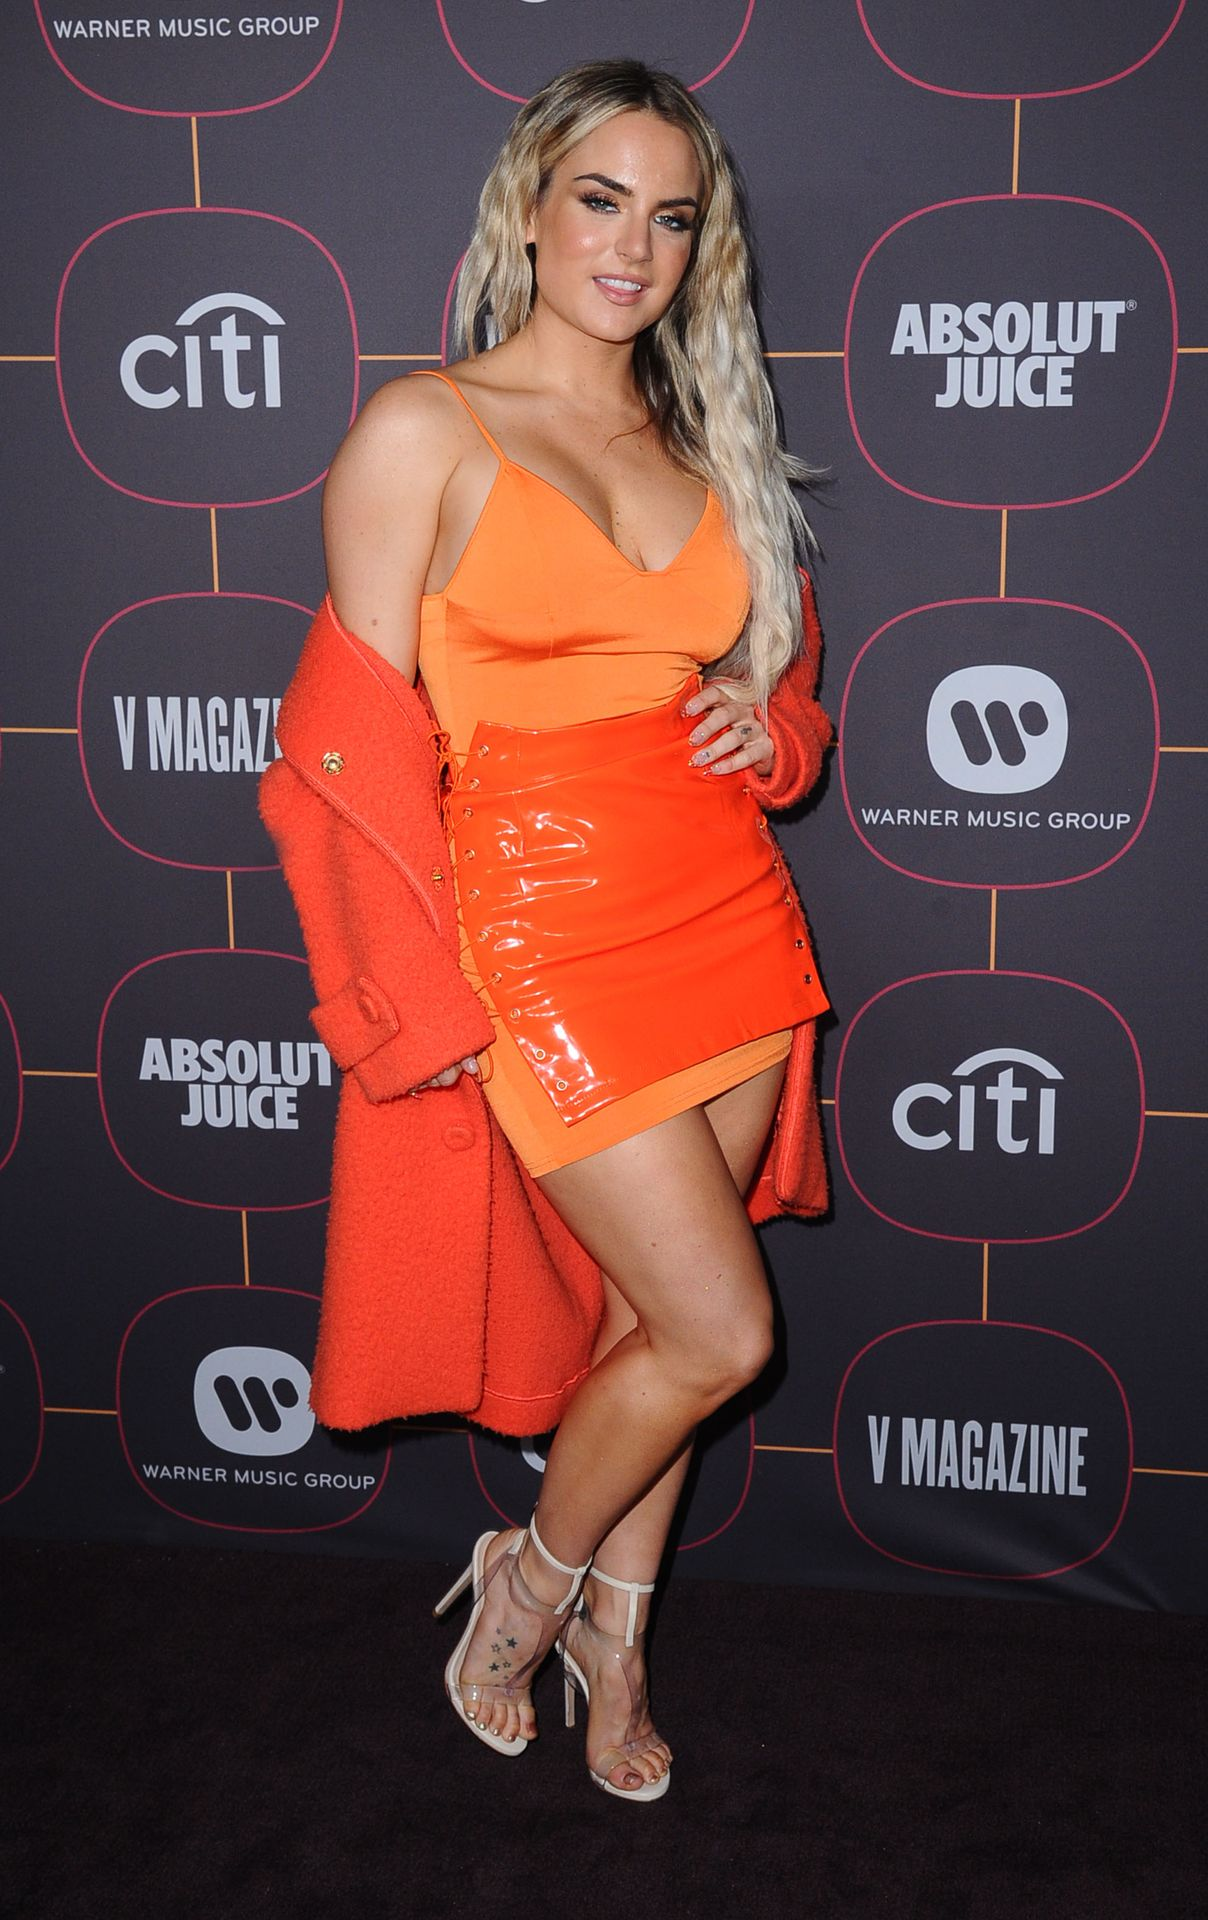 Jojo Shows Off Her Tits At The Warner Music Group Pre Grammy Party In Hollywood 0019